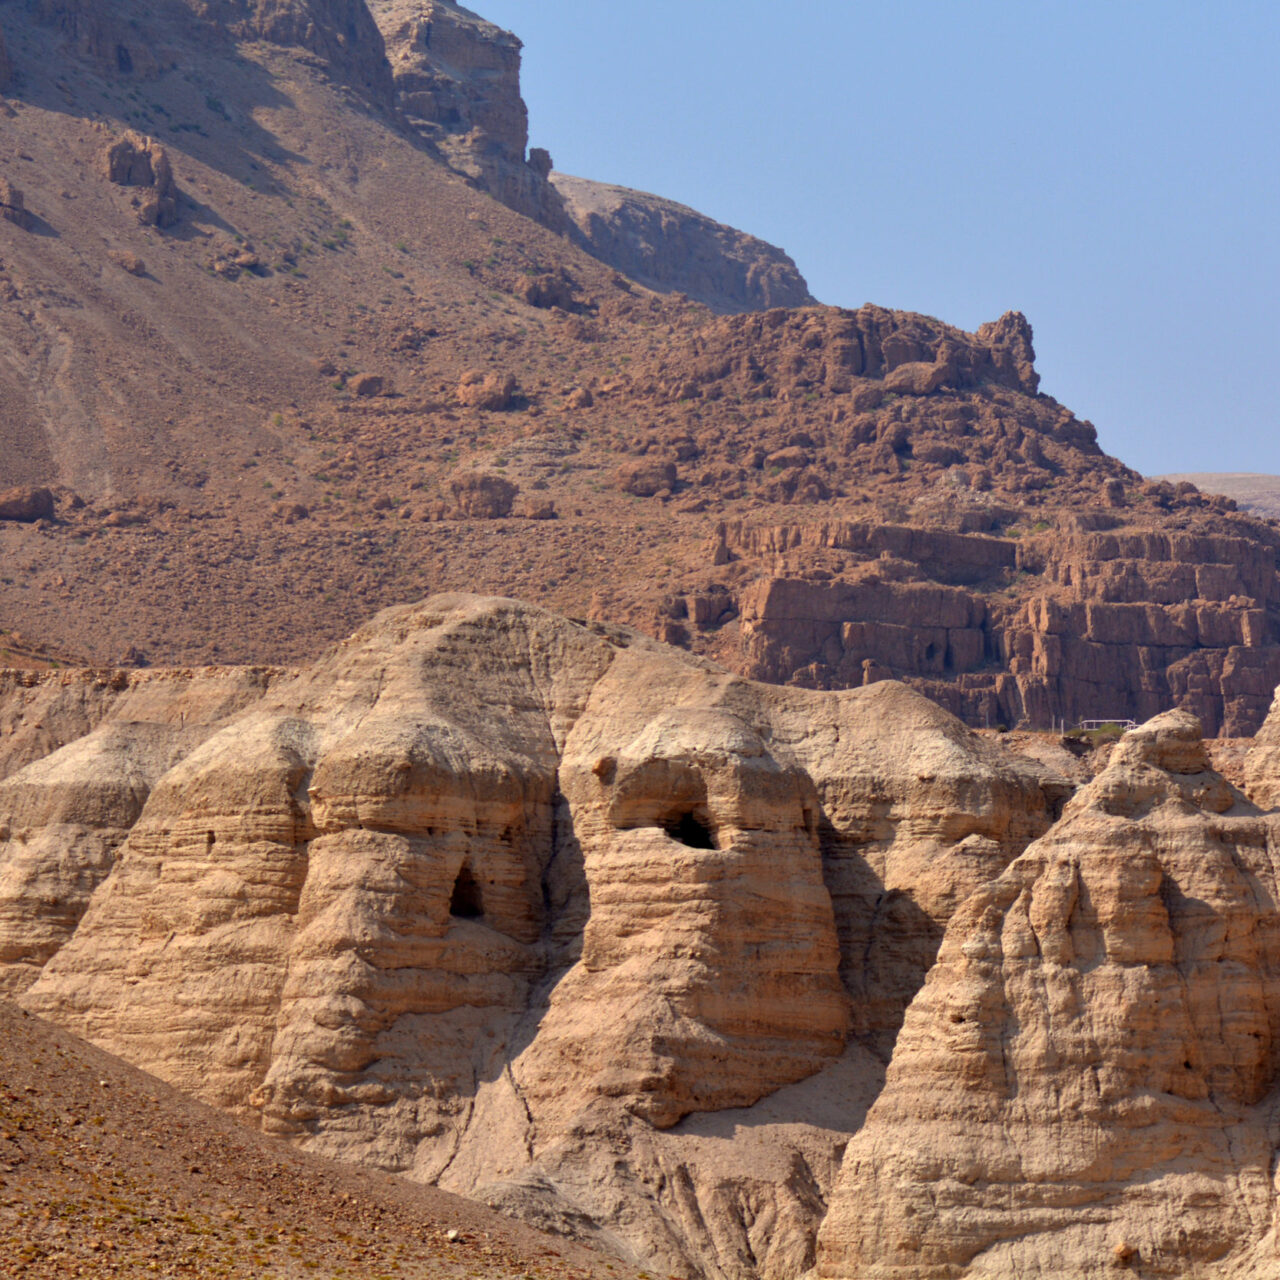 Qumran caves in Qumran National Park near the Dead Sea Israel where the Dead Sea Scrolls discovered between 1946 and 1956.